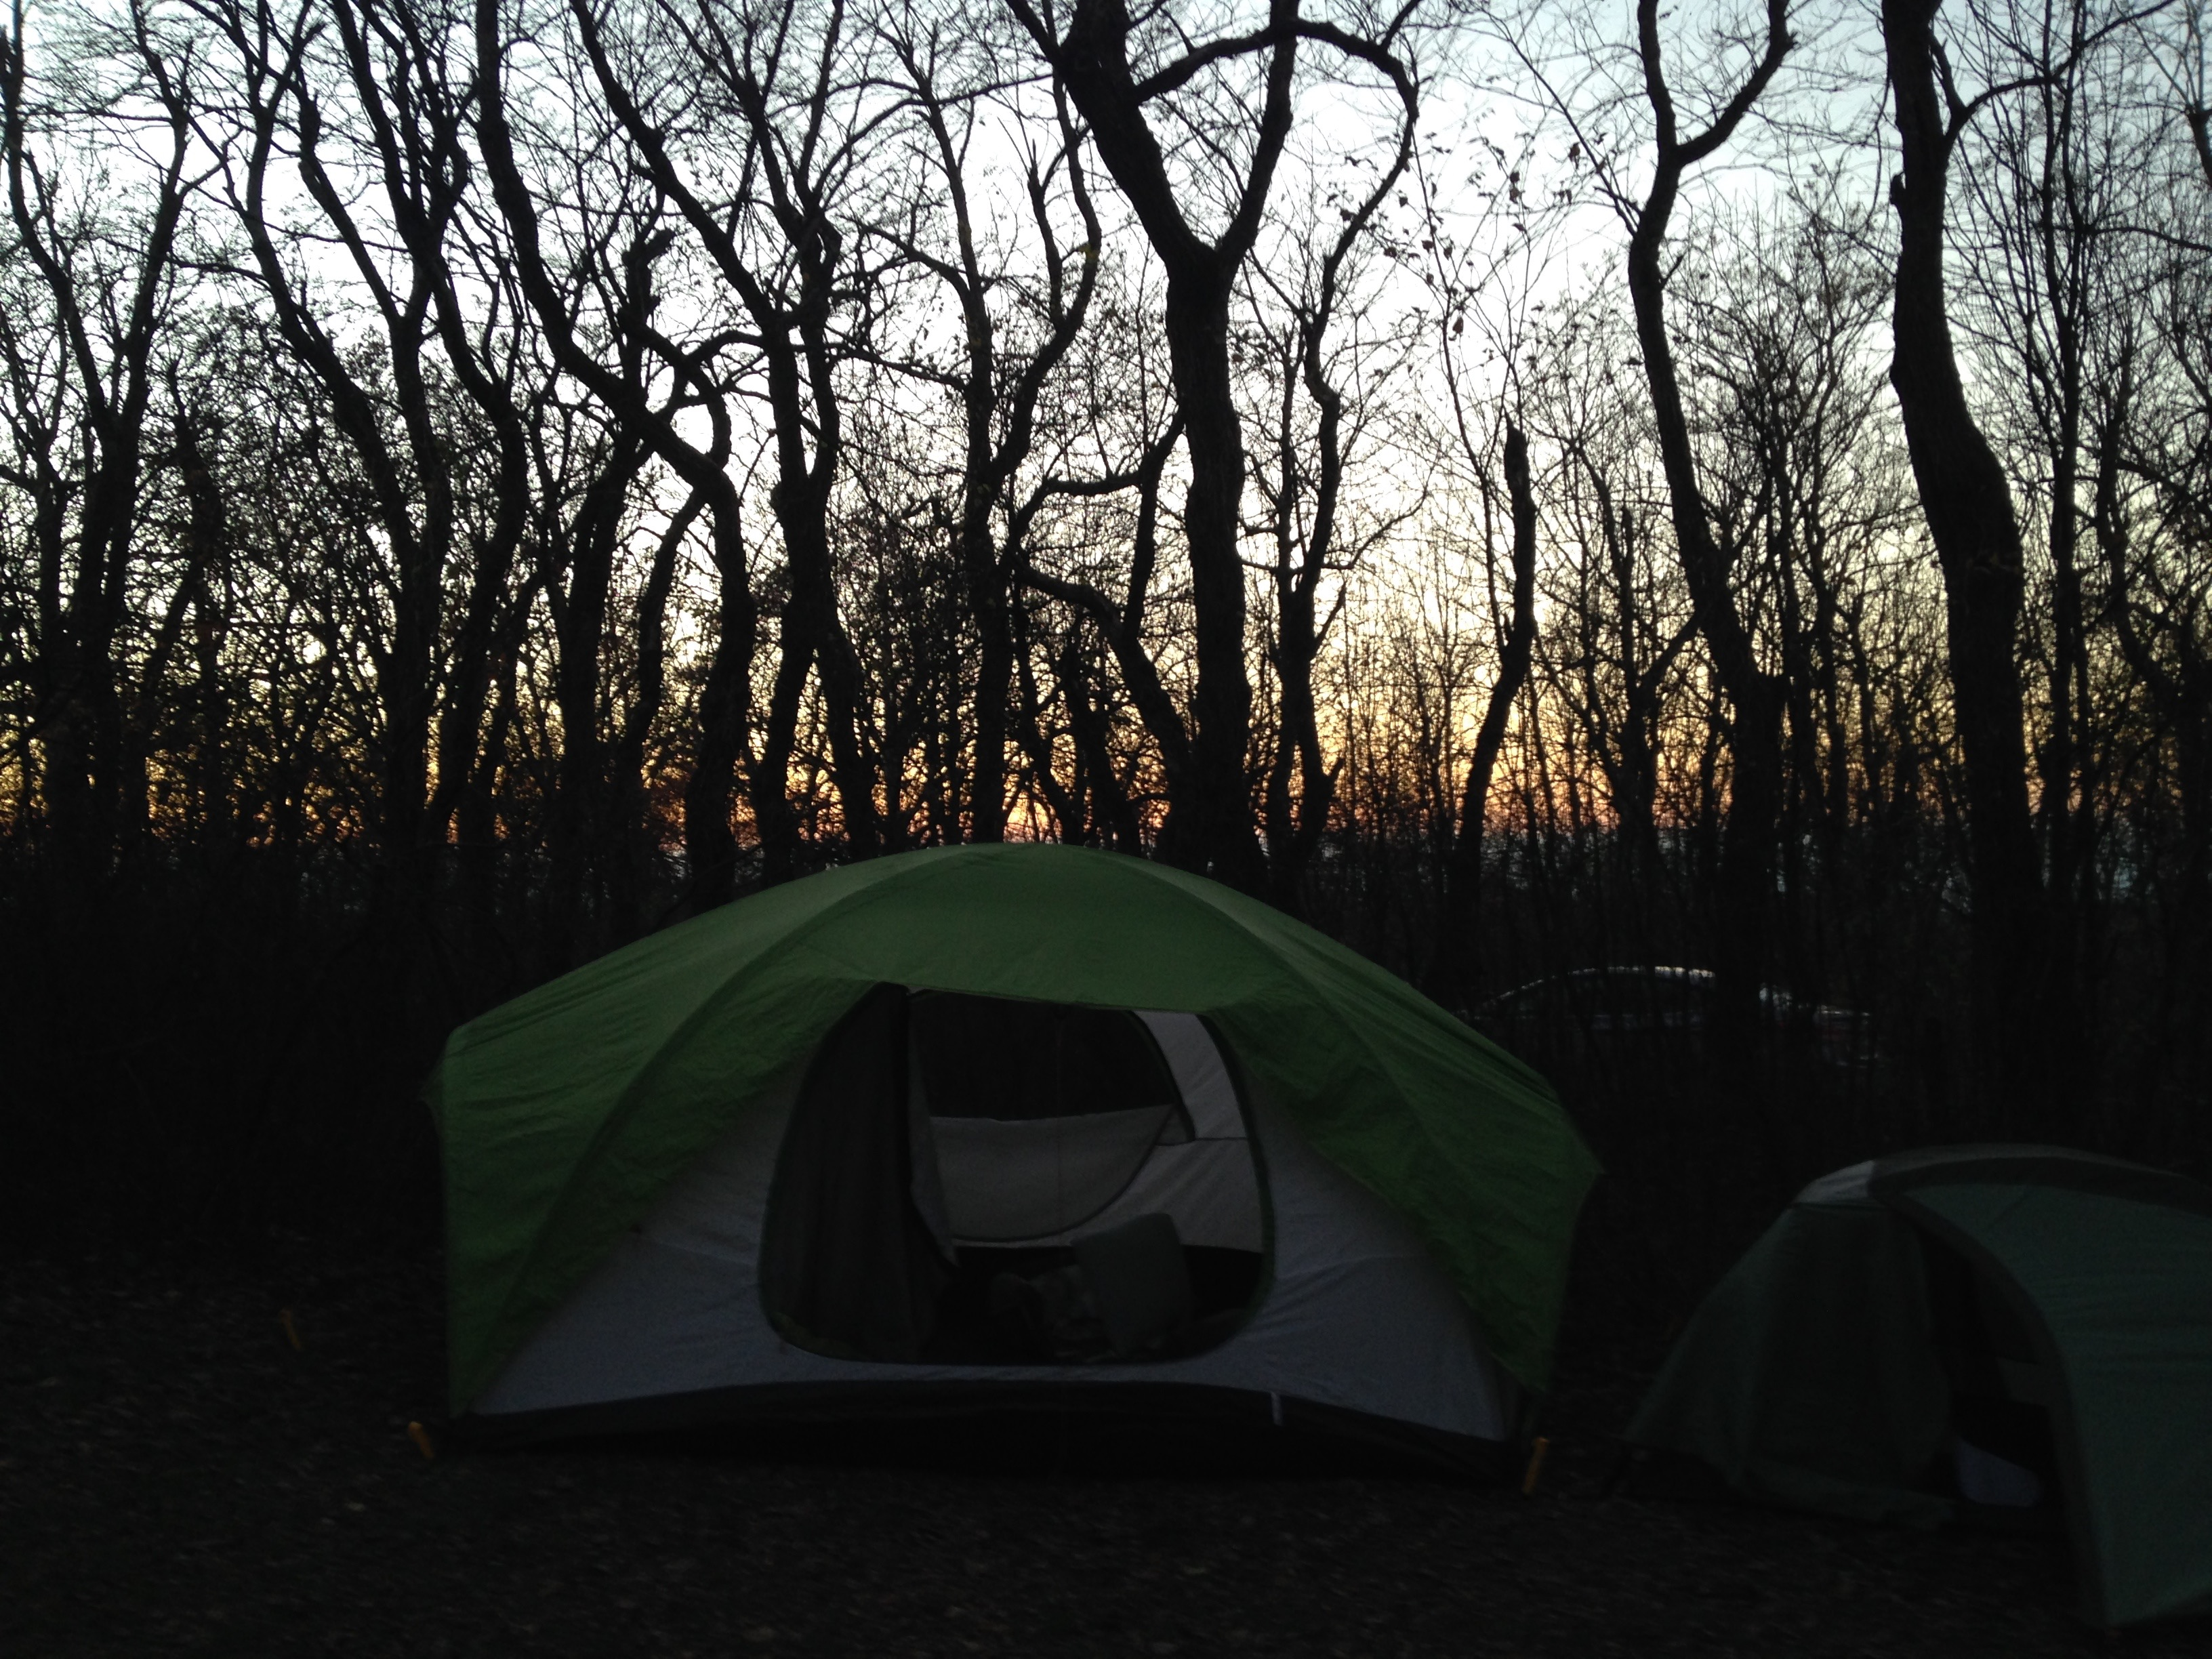 Camping at dusk, Shenandoah National Park, Virginia